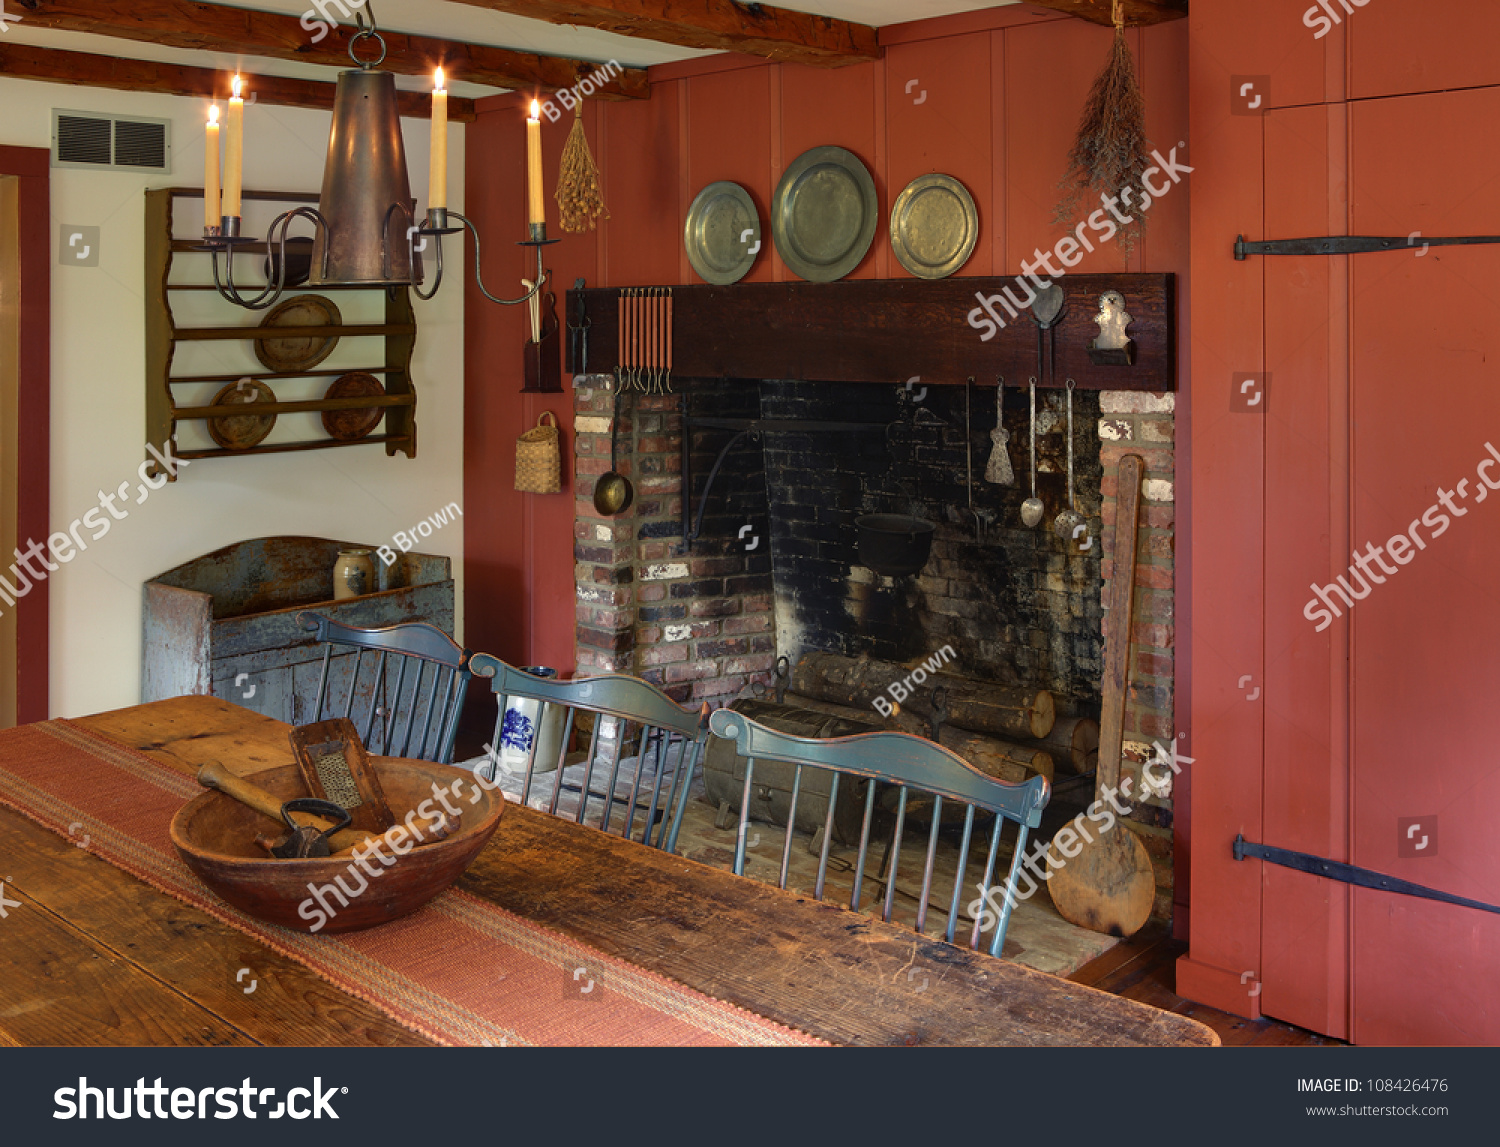 Dining room primitive colonial style reproduction stock for Reproduction homes